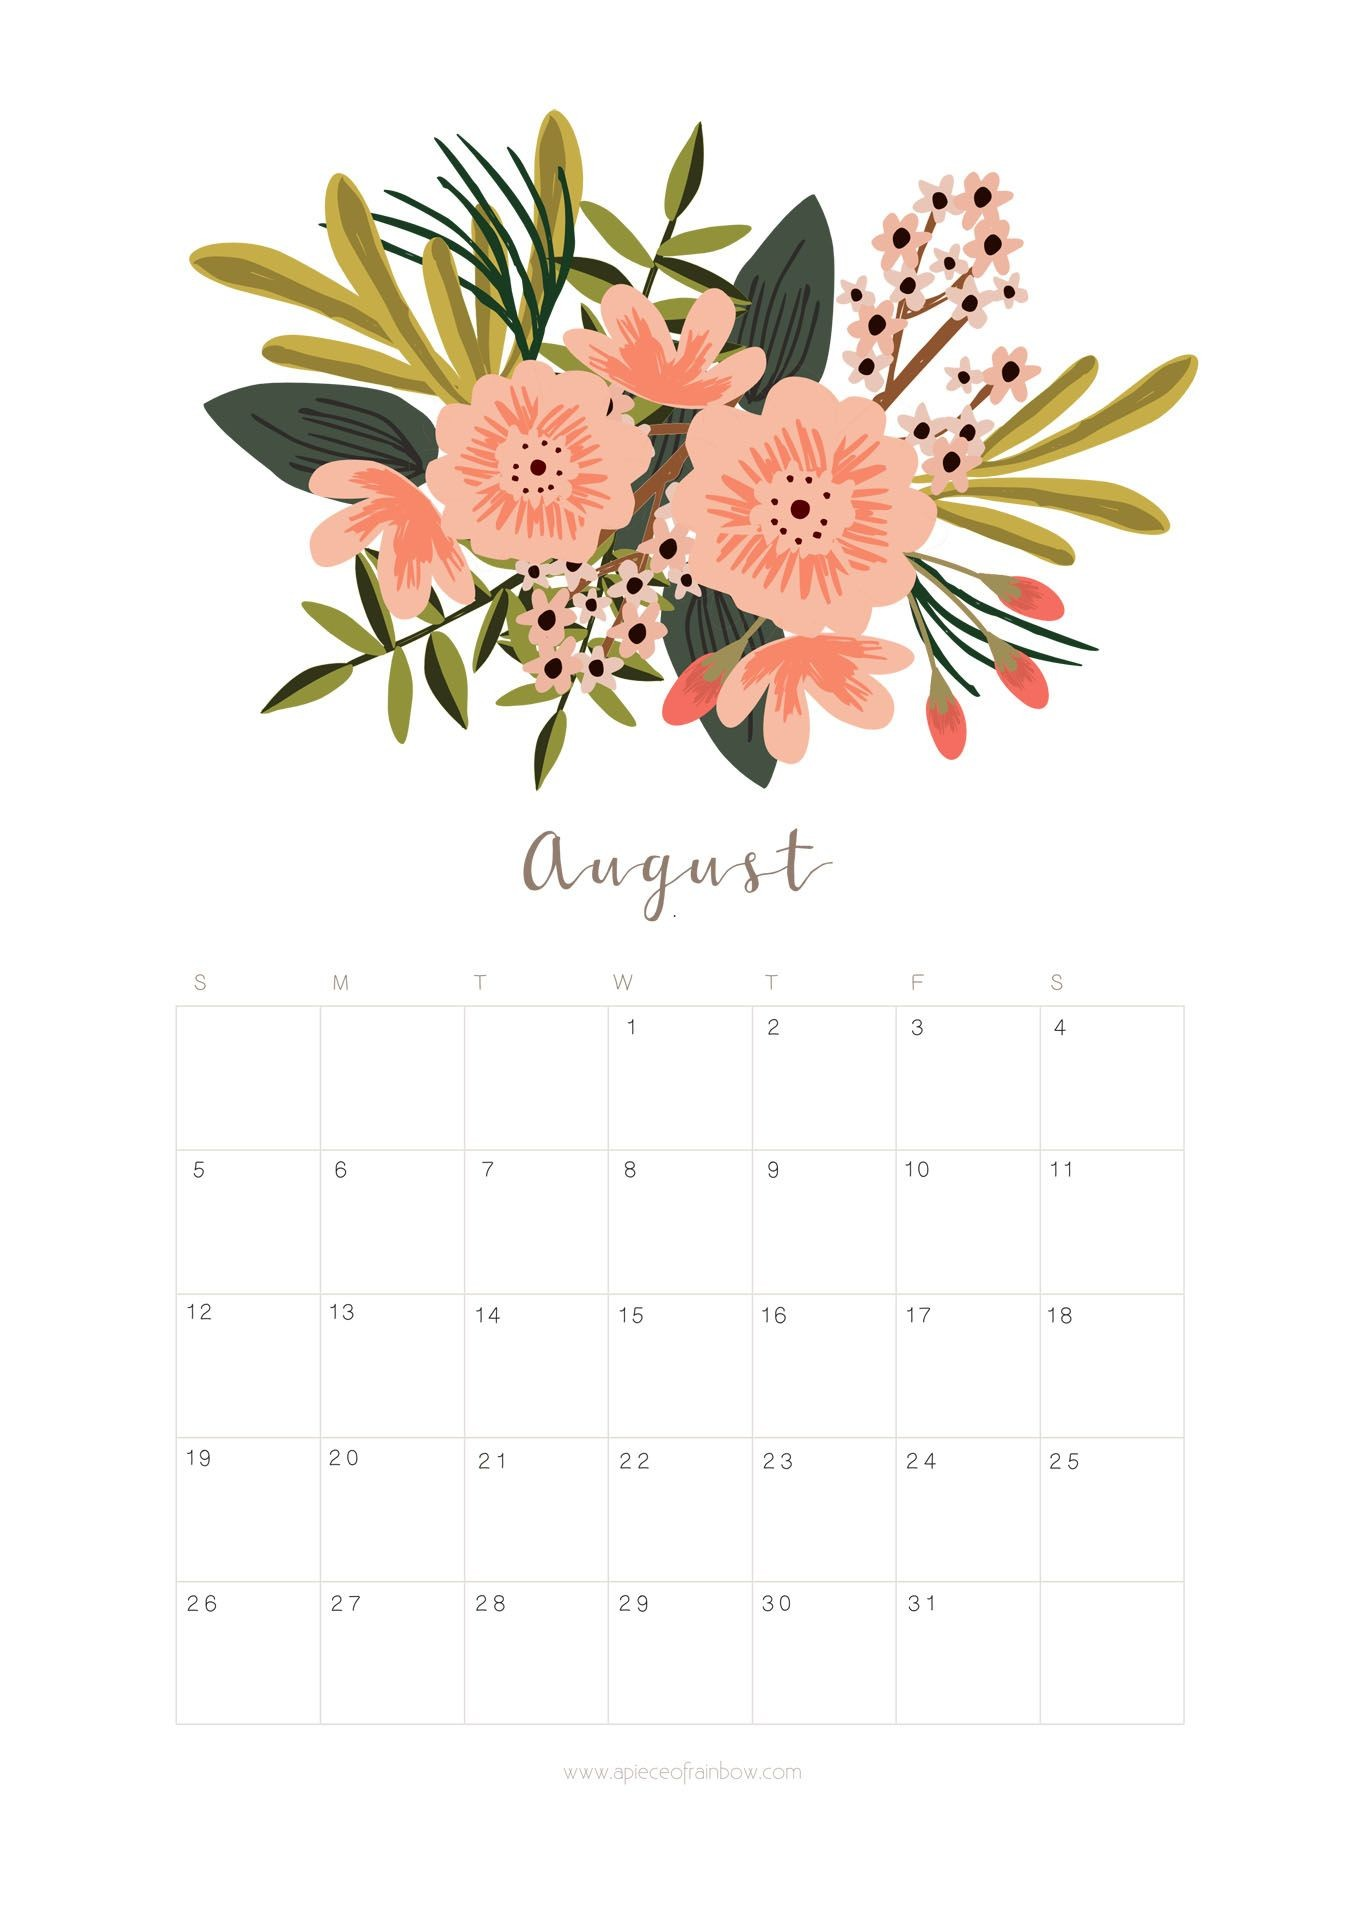 August Calender Monthly Calender Monthly Planner Printable 2018 Calendar Excel Calendar Pages